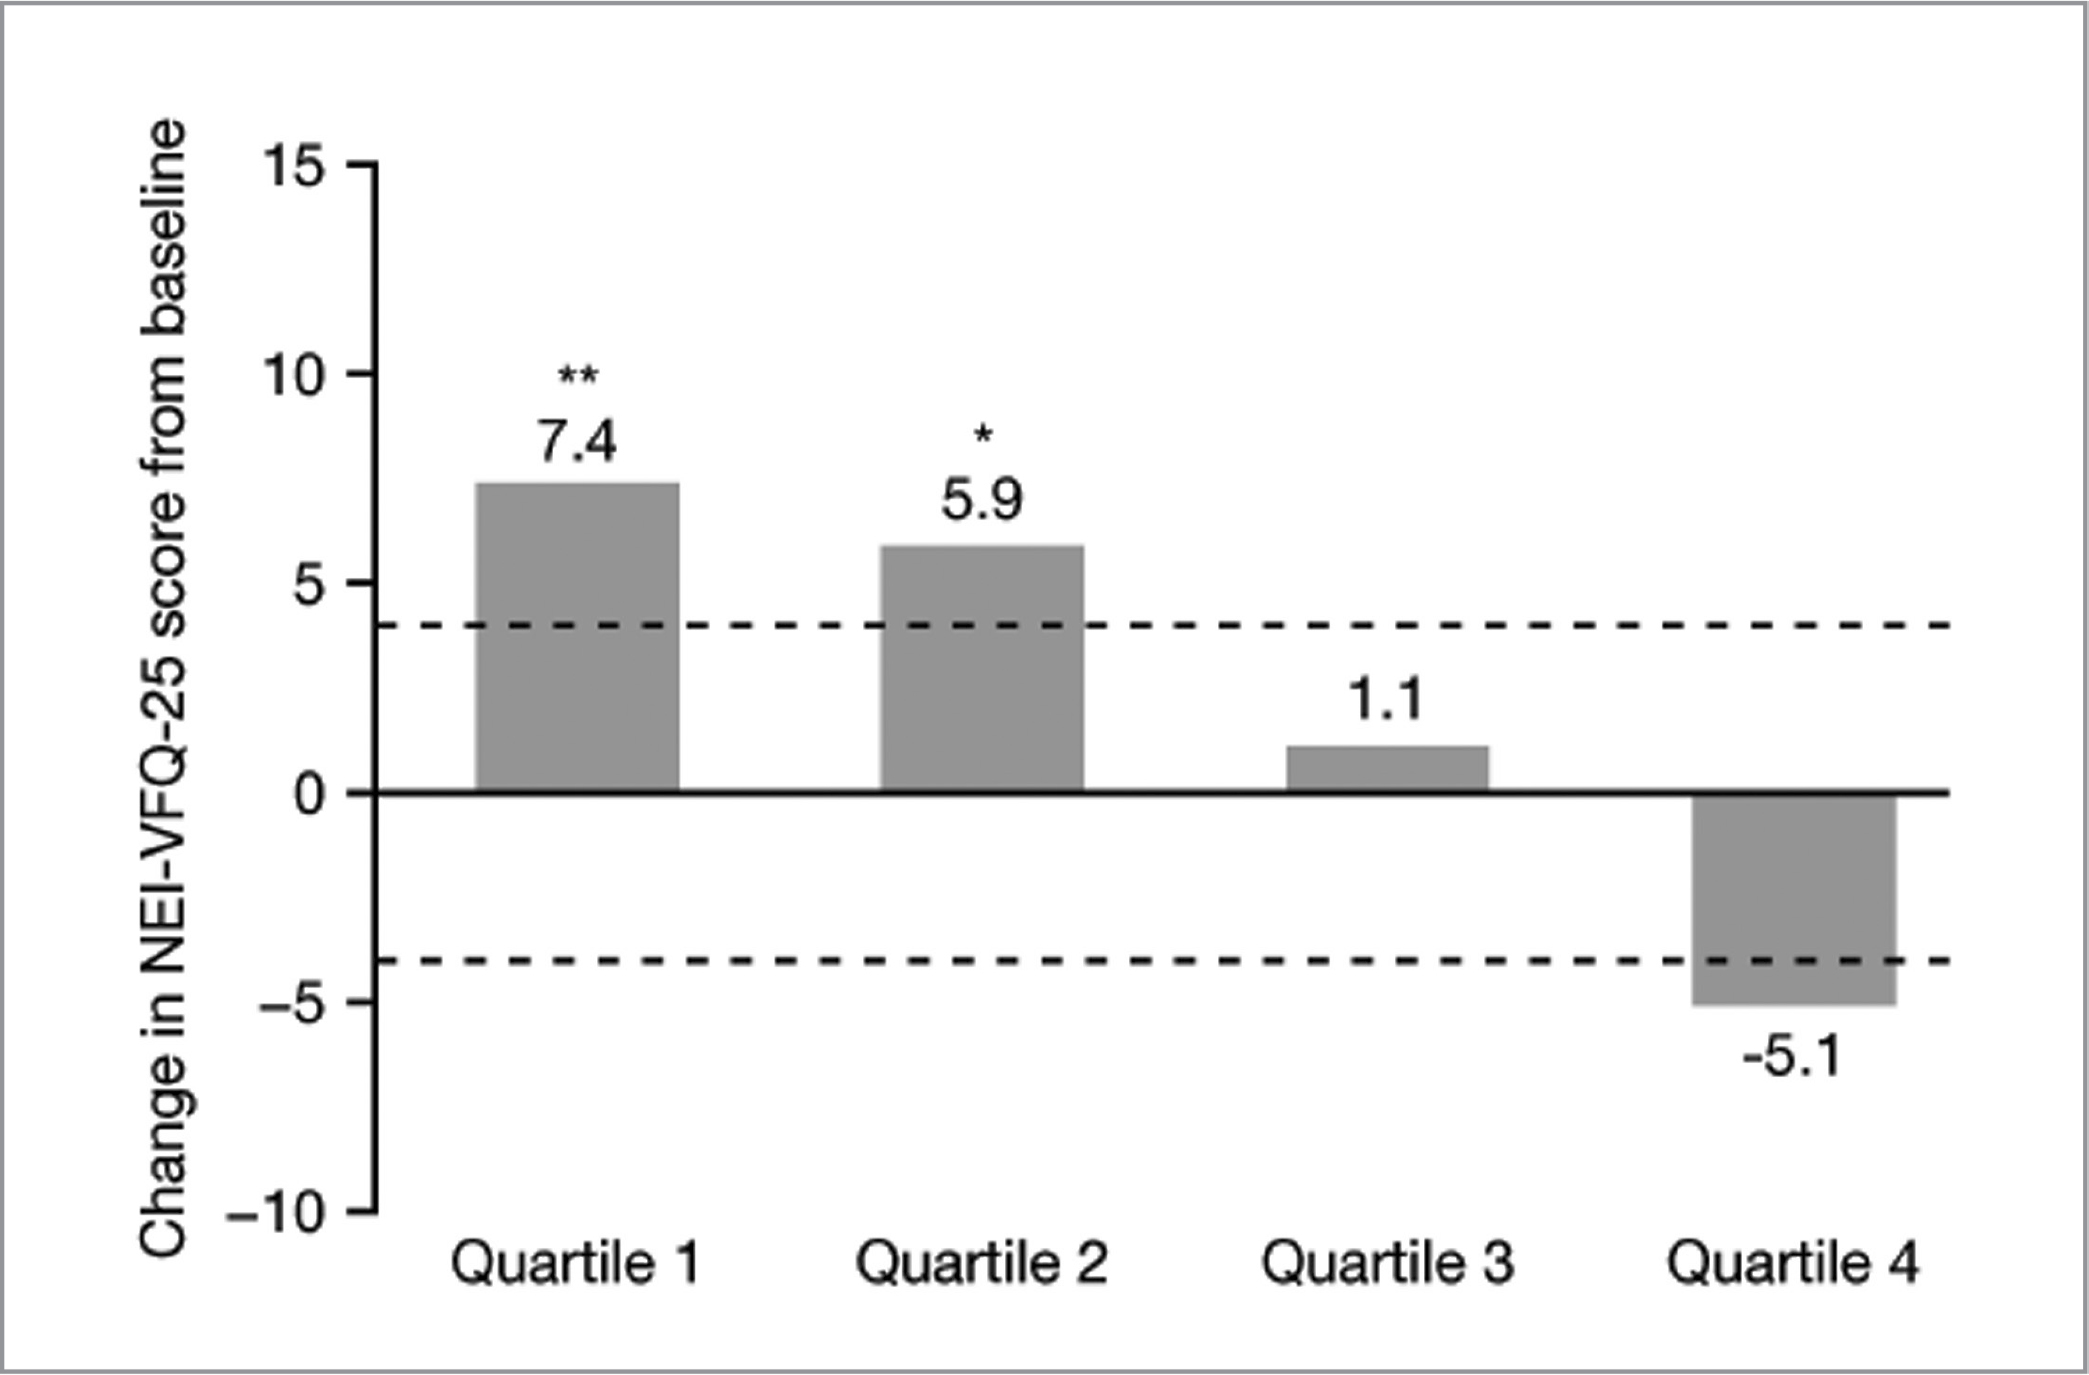 Overall National Eye Institute Visual Function Questionnaire 25 (NEI-VFQ-25) score for all patients from baseline to Year 3. *P < .05; **P < .001; clinically meaningful change in NEI-VFQ-25 score shown by dashed line.